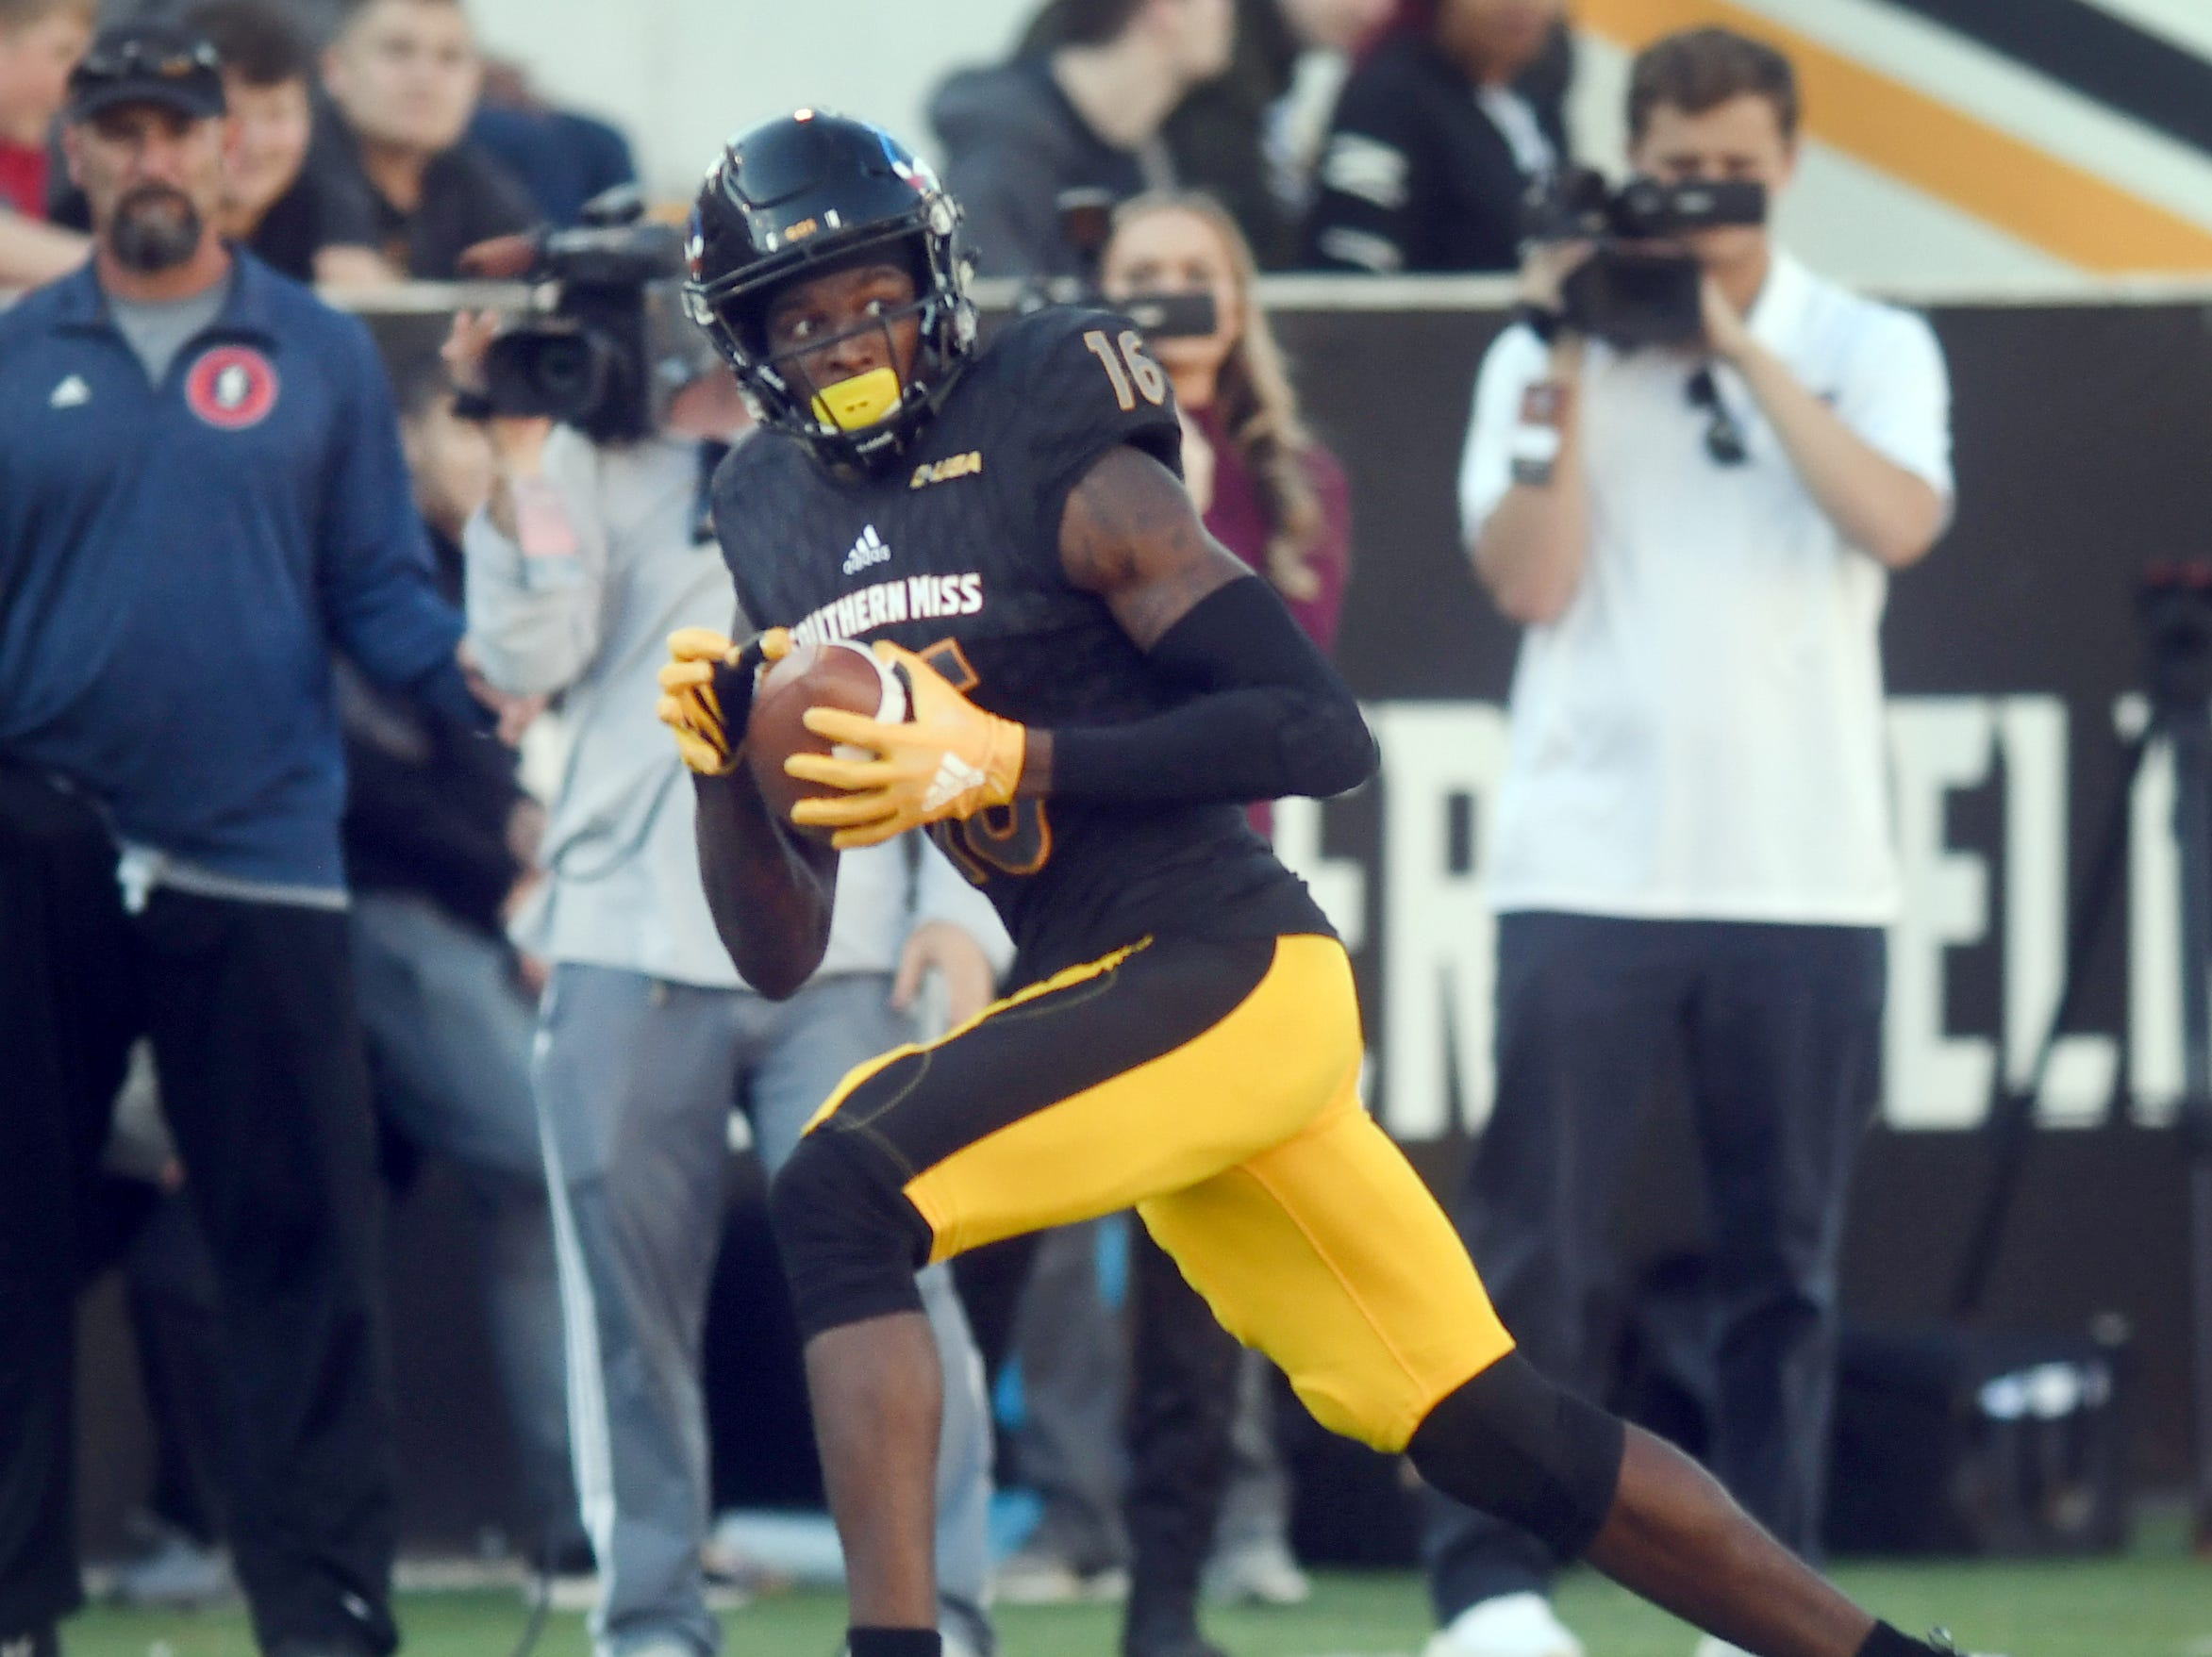 Southern Miss wide receiver Quez Watkins carries the ball in a game against Marshall at M.M. Roberts Stadium on Saturday, November 3, 2018.